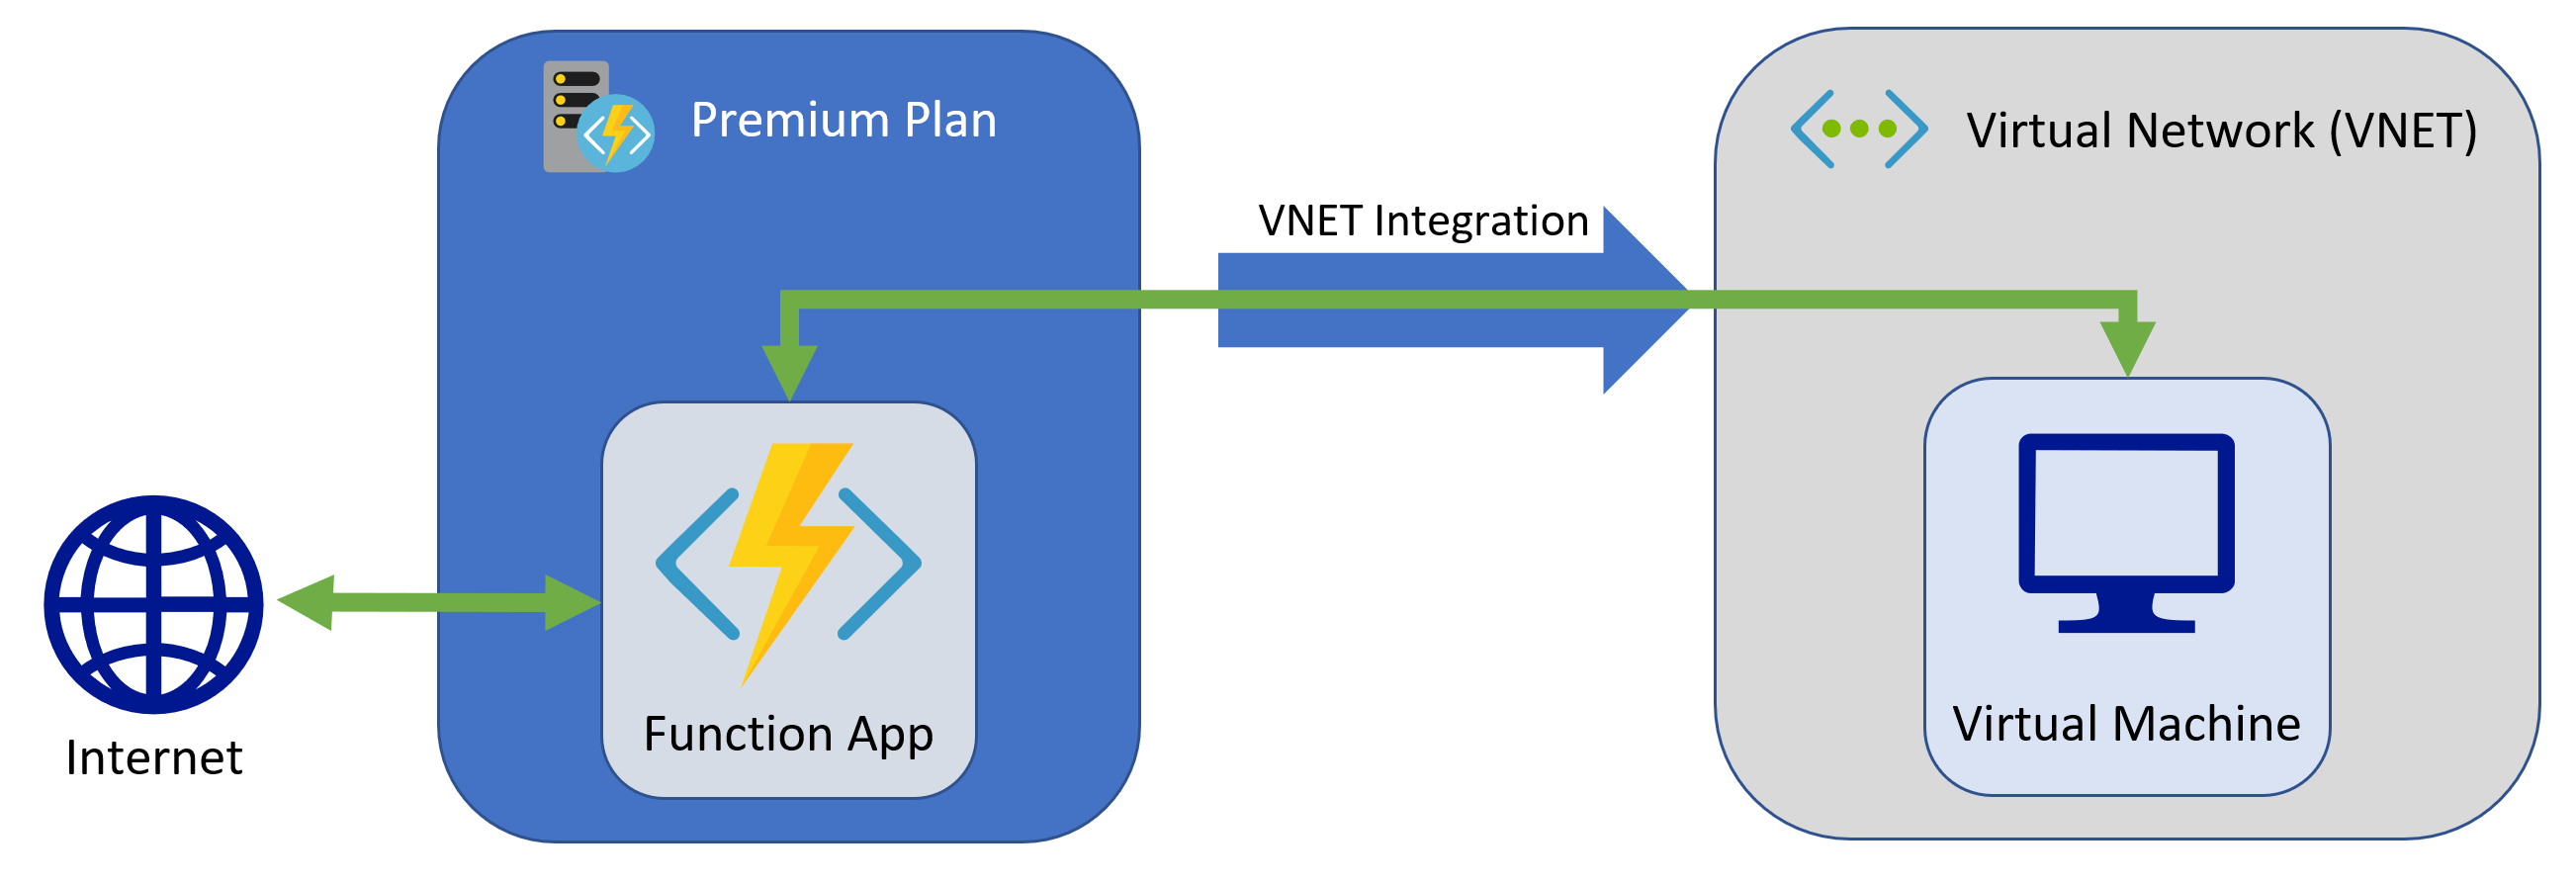 Integrate Azure Functions with an Azure virtual network